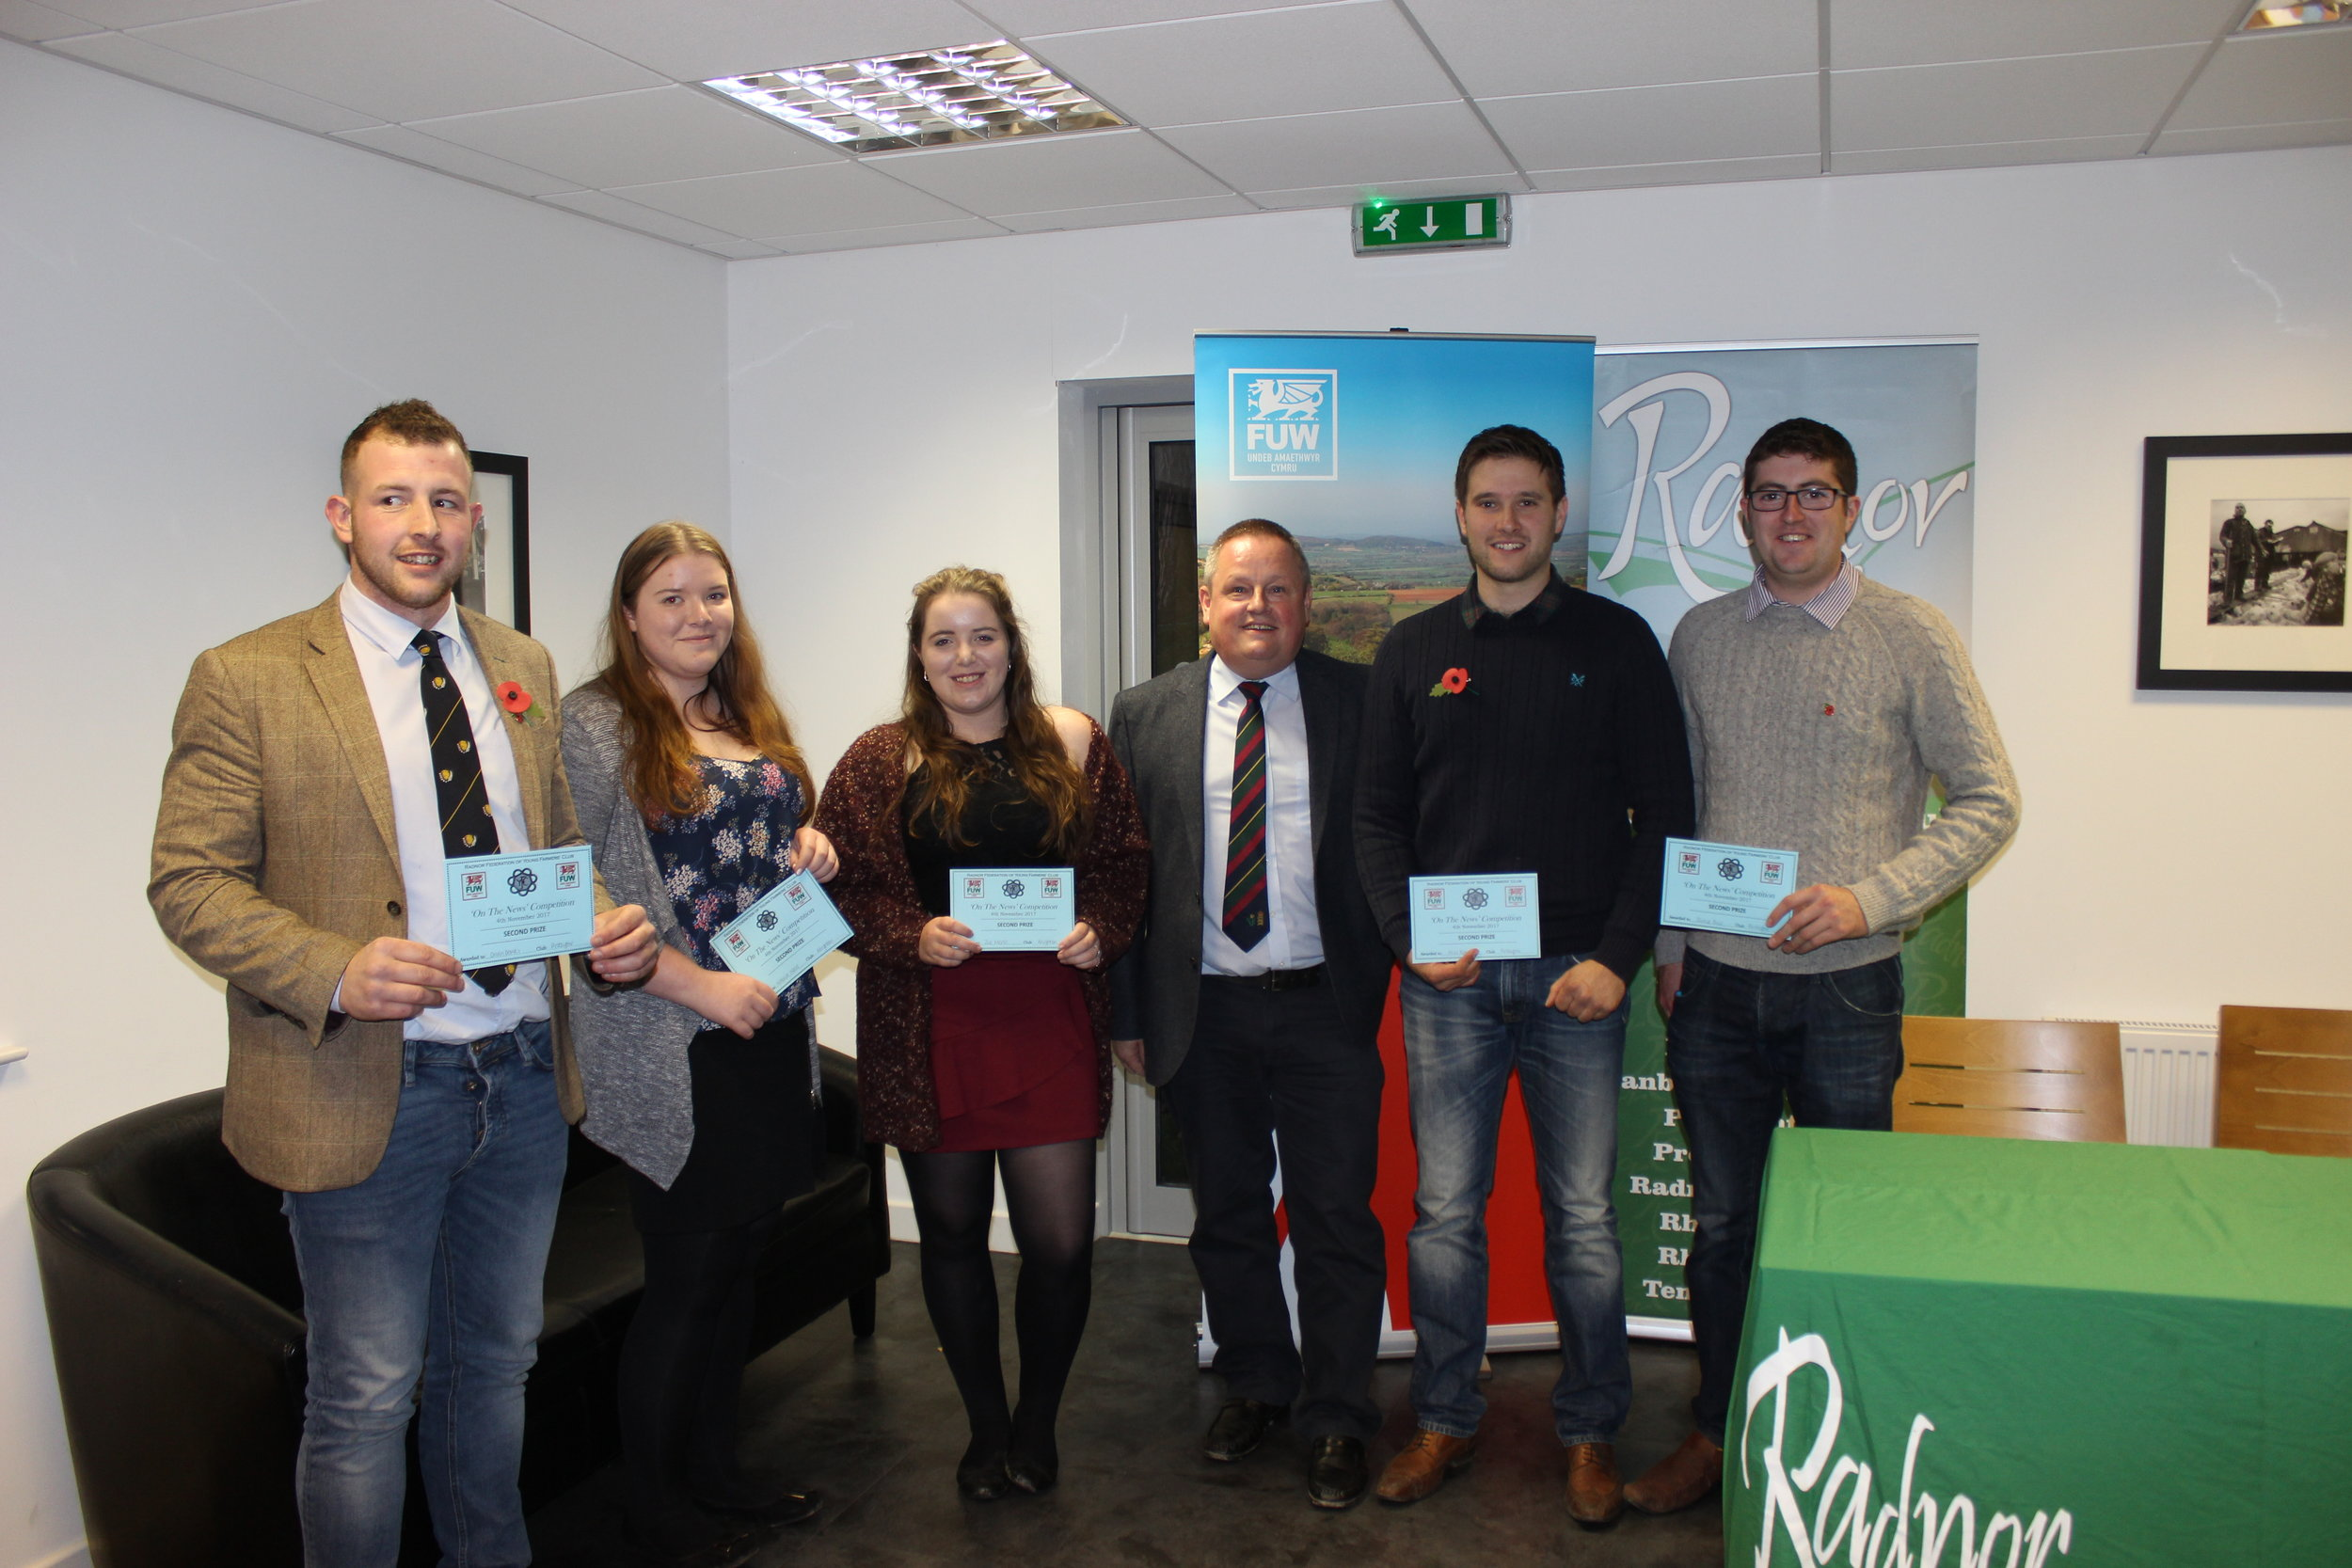 Owen Davies, Natalie Wood, Cerys Wood, William Rogers & Jamie Price, Presteigne YFC & Knighton YFC gaining joint 2nd in the 'On The News' Competition with judge Trevor Owens.